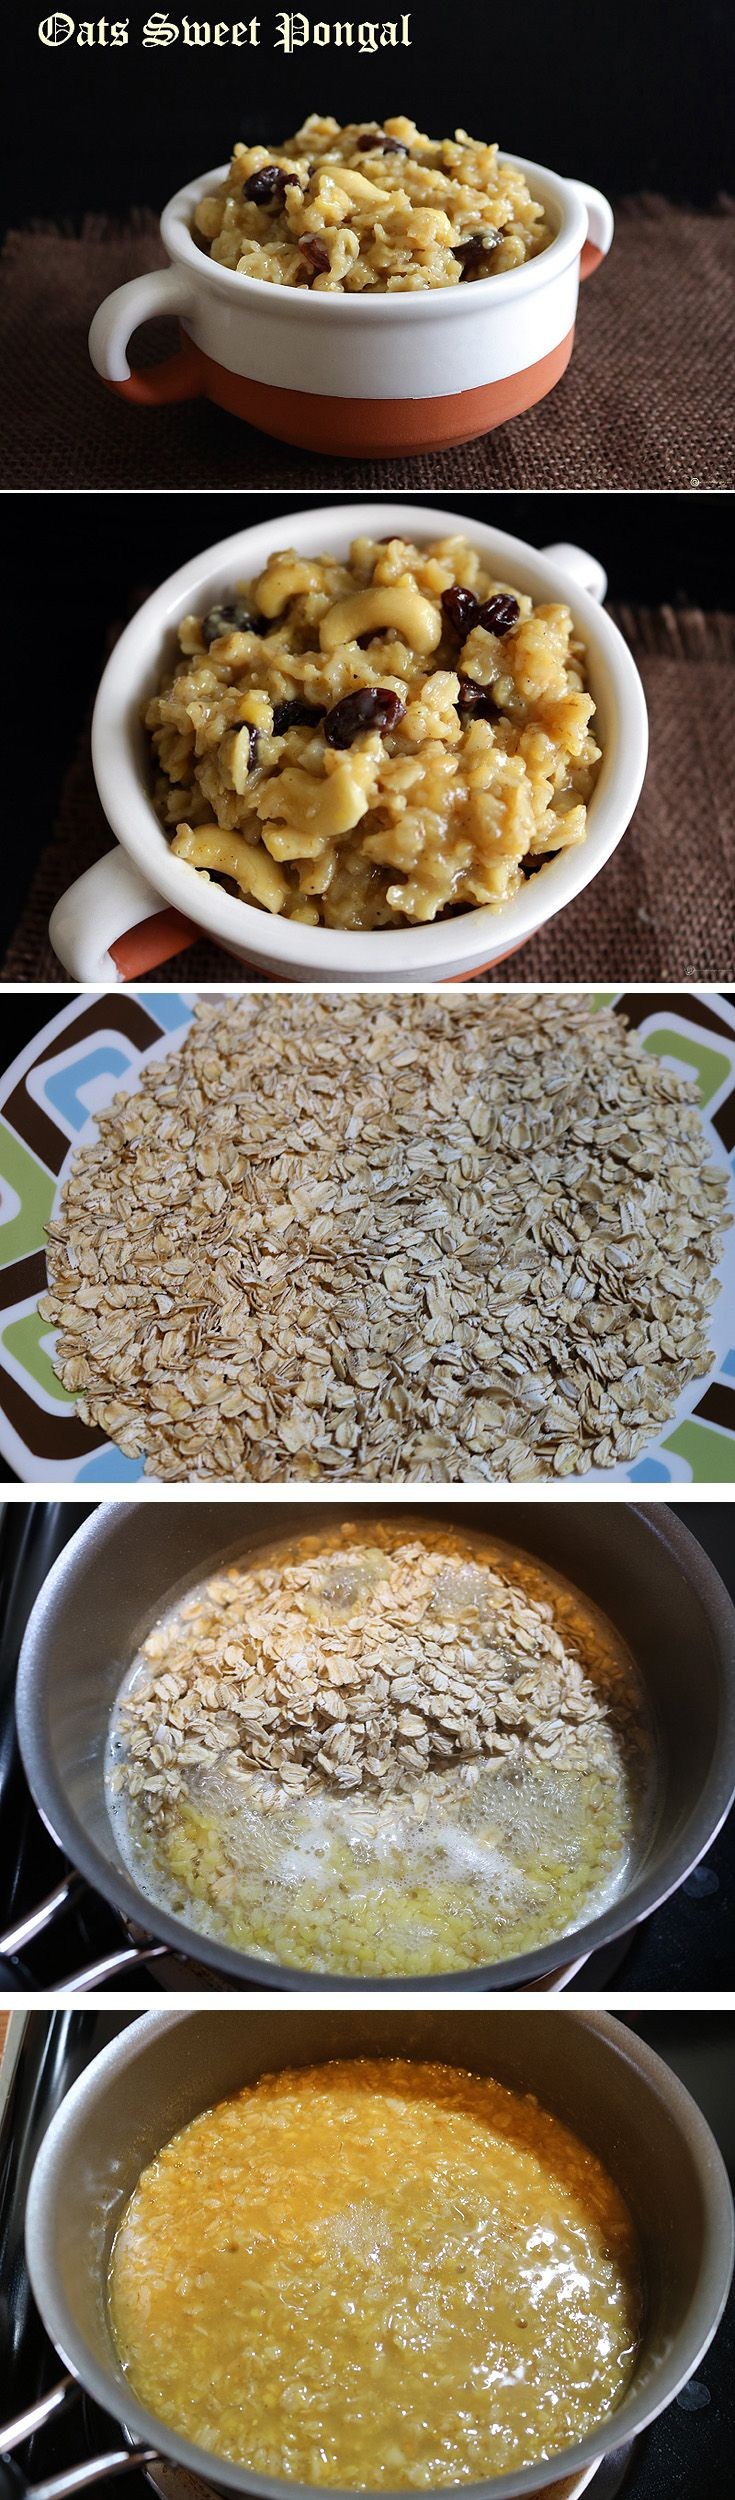 Trying to eat healthy and bored of same old oats recipes. Try this South Indian Oats Sweet pongal. Flavored with cardamom and sweetened with jaggery.